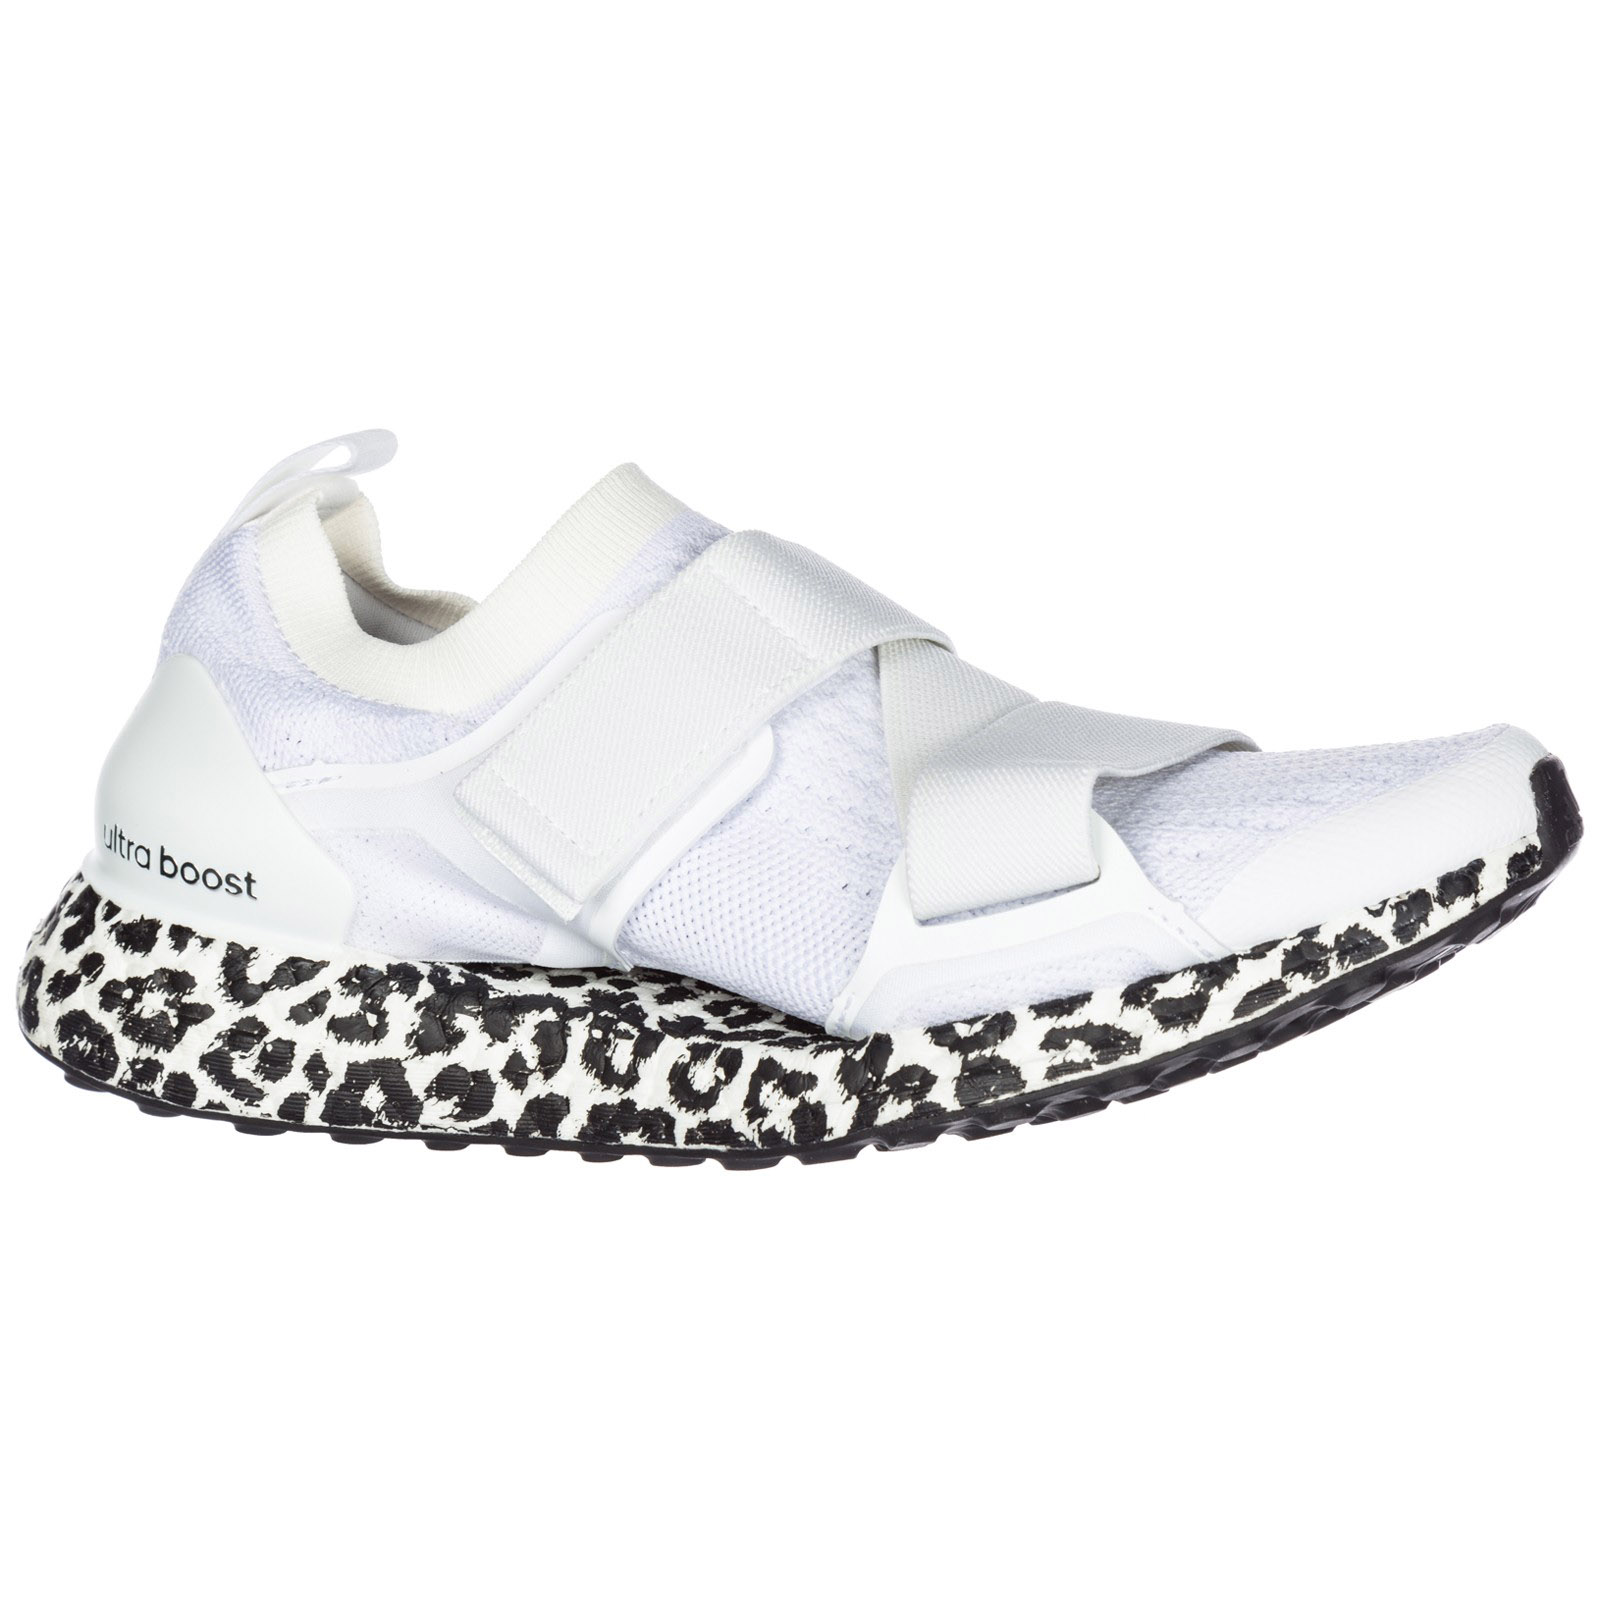 268e8c1982f6 Basket Adidas by Stella McCartney Ultraboost X AC7548 cloud white ...